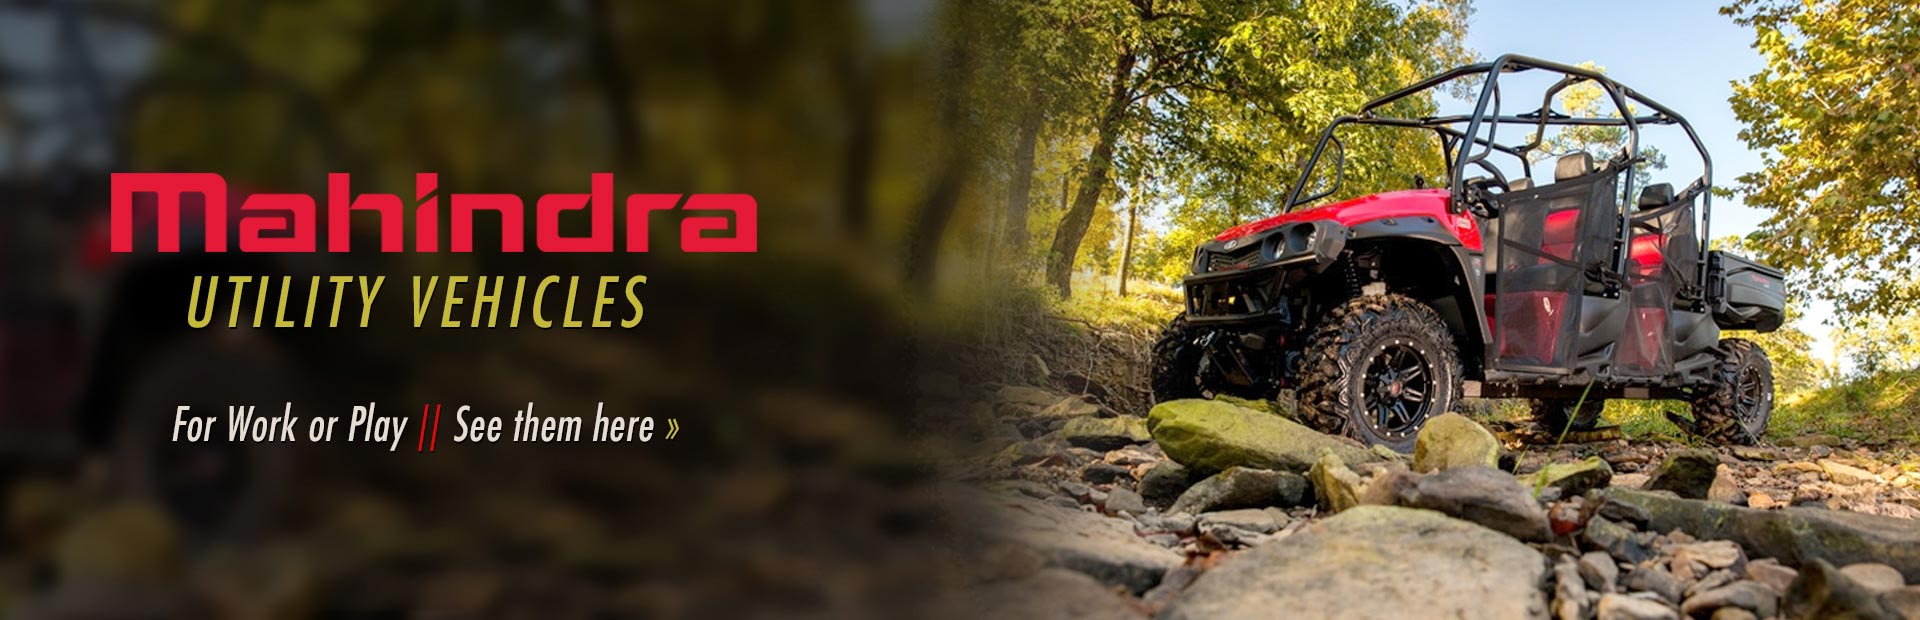 Mahindra utility vehicles are perfect for work or play. Click here to view our selection.